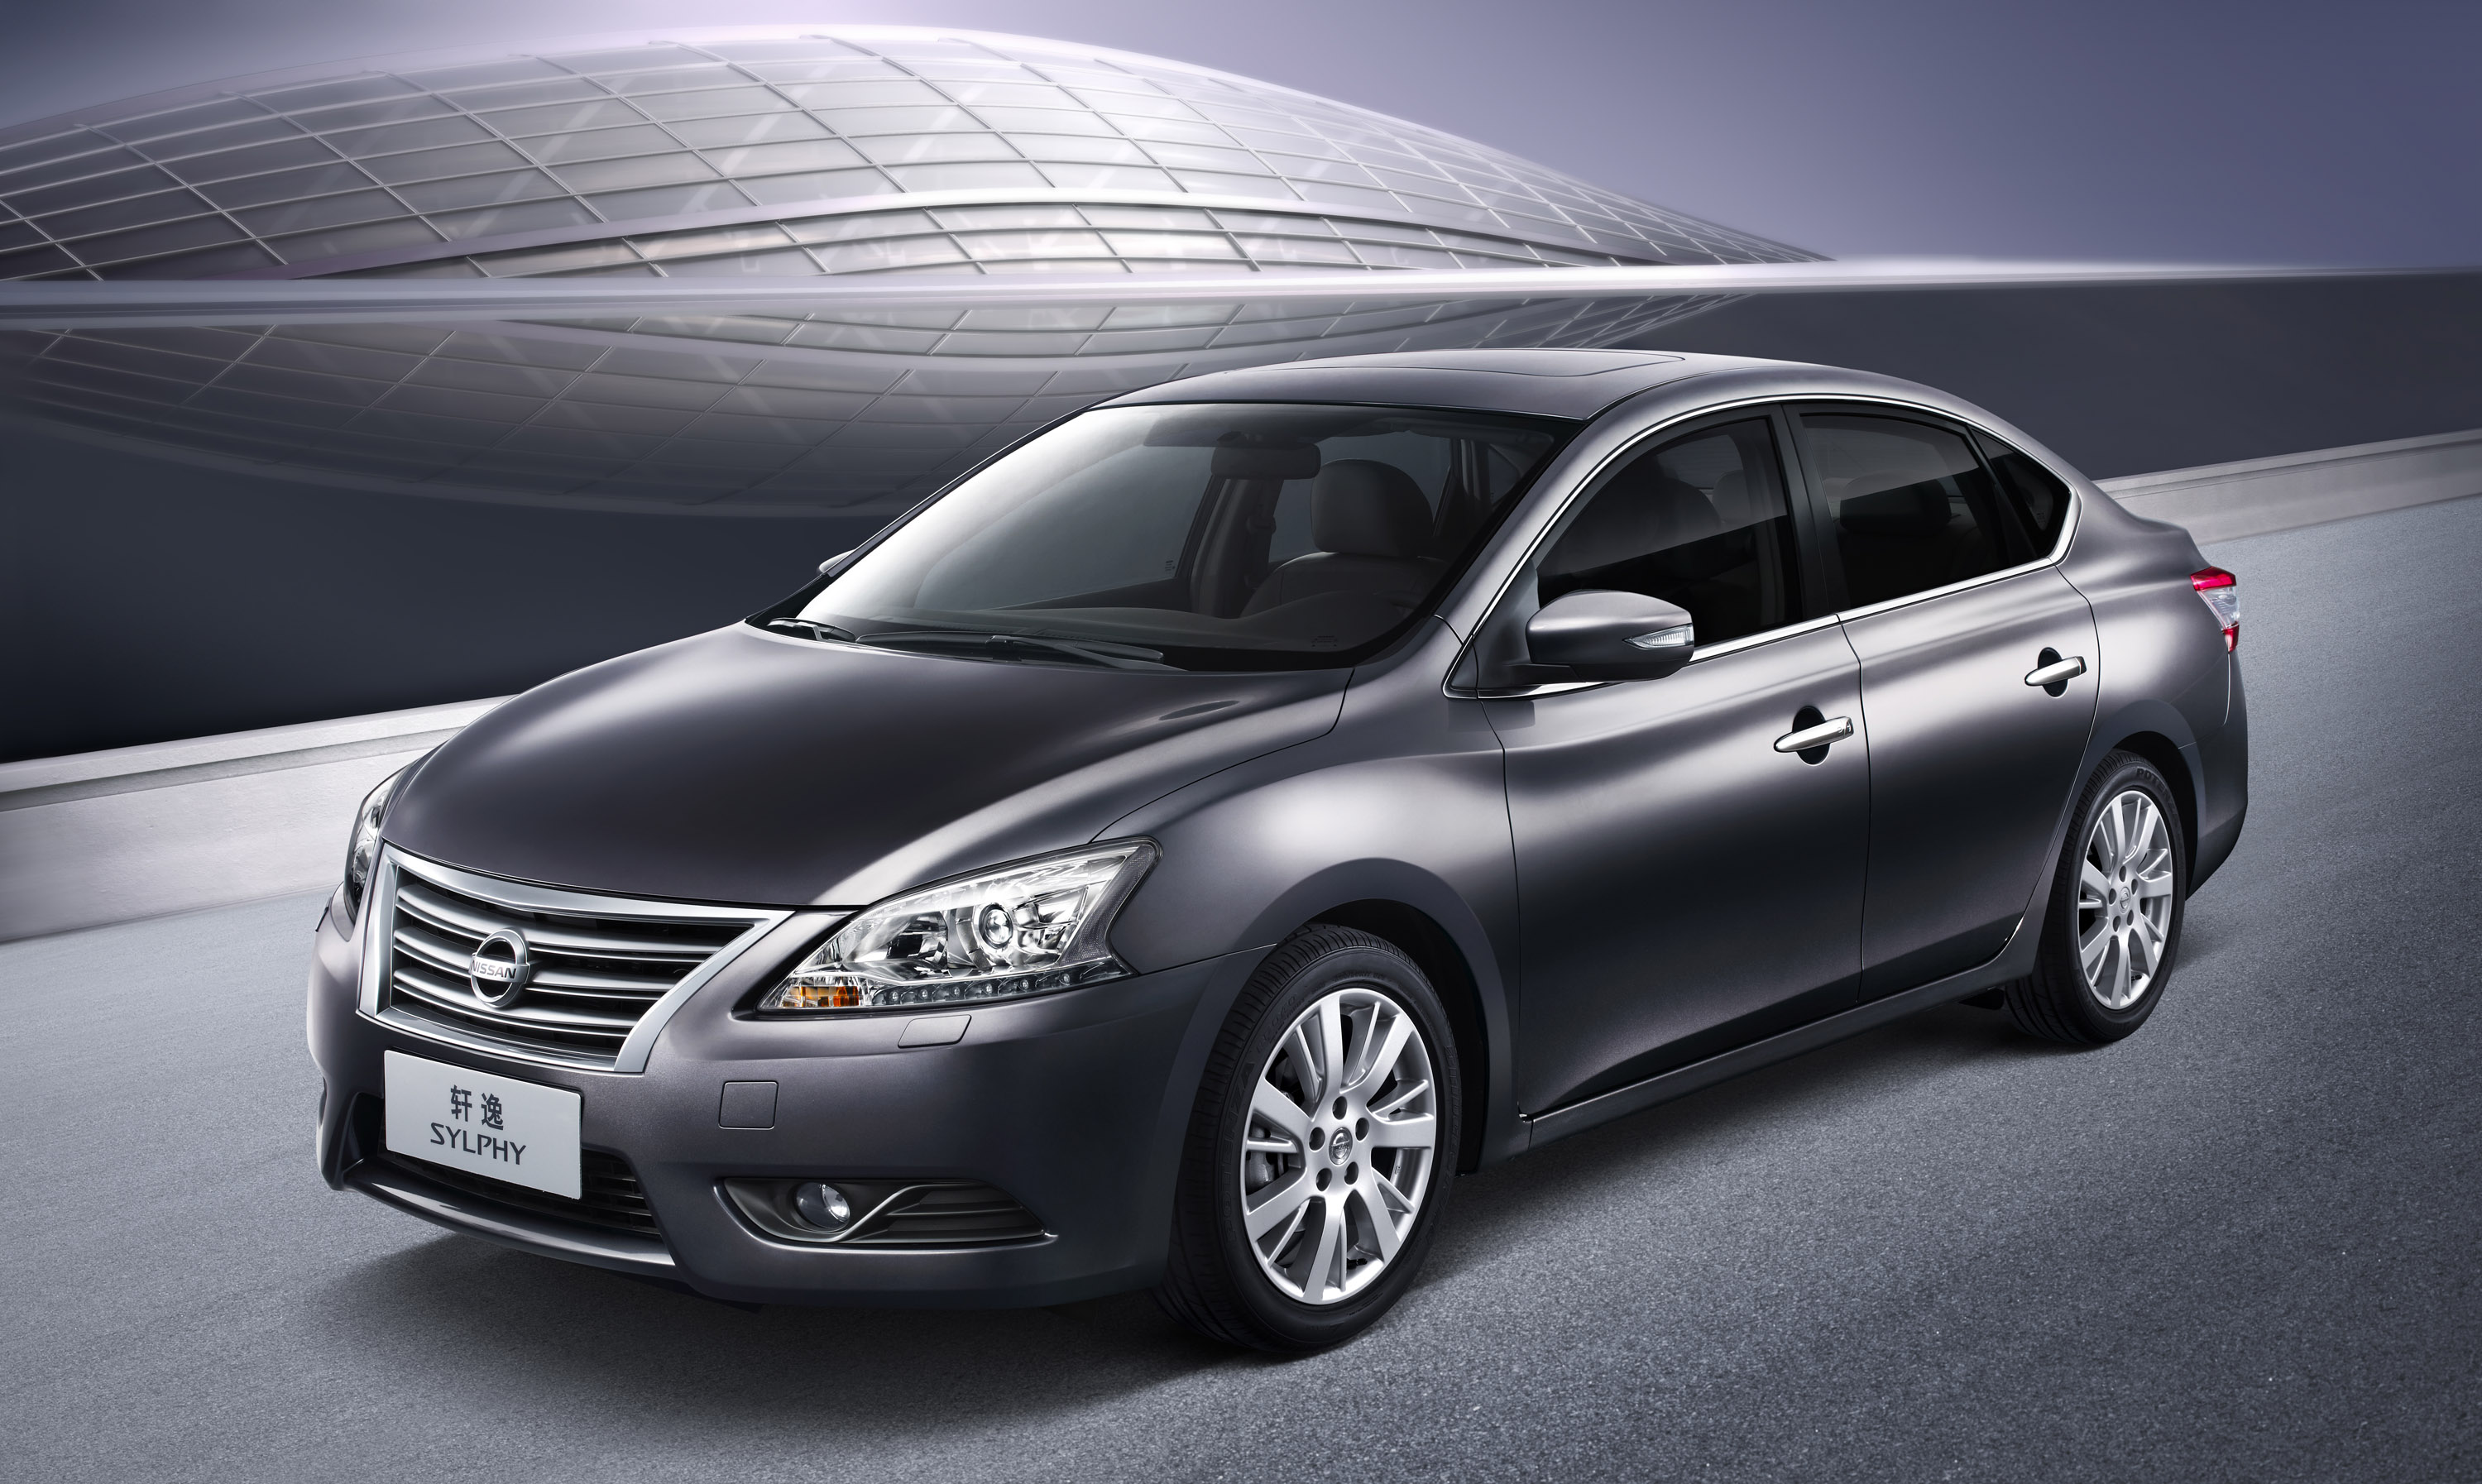 2013 Nissan Sylphy Sentra Hd Pictures Where Is The Inertia Switch On 2015 Thumbnail Photo 2469